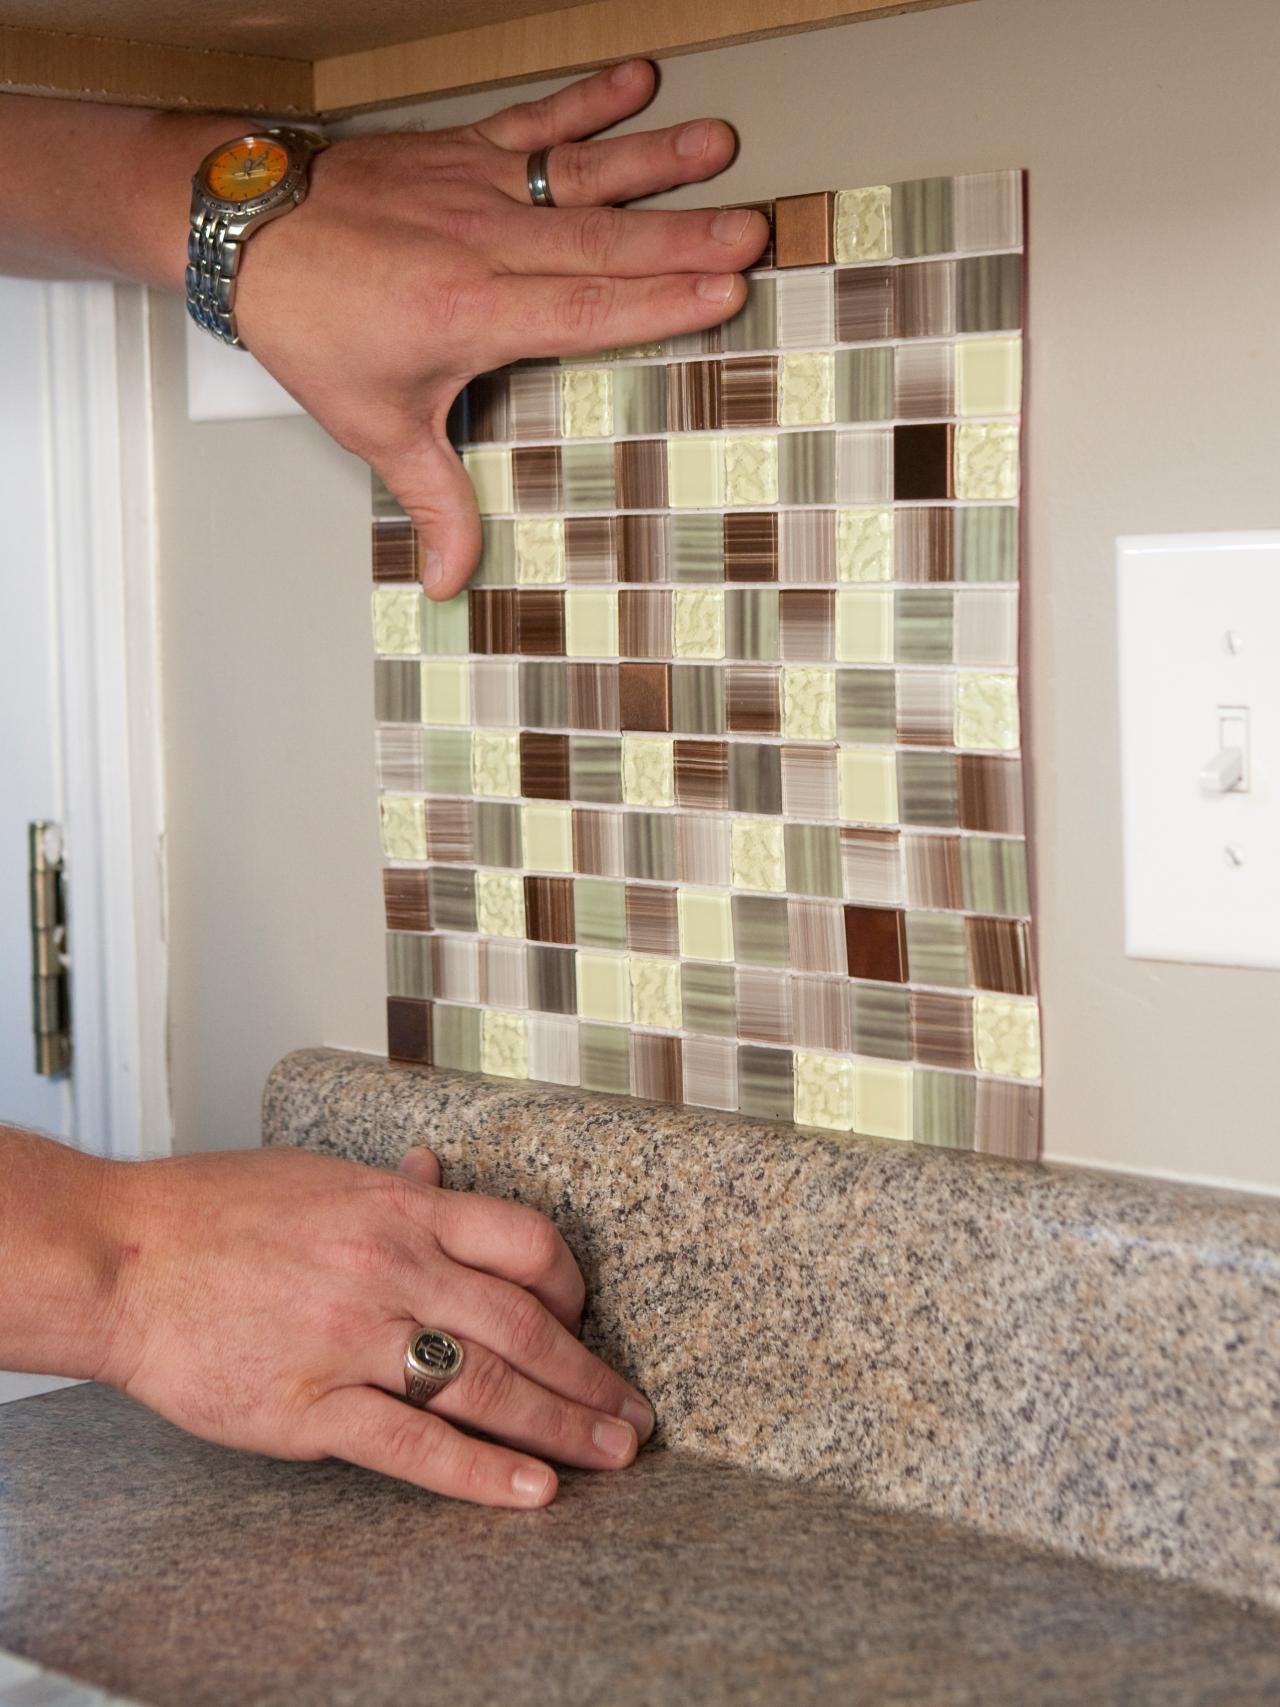 How to Install a Backsplash | how-tos | DIY